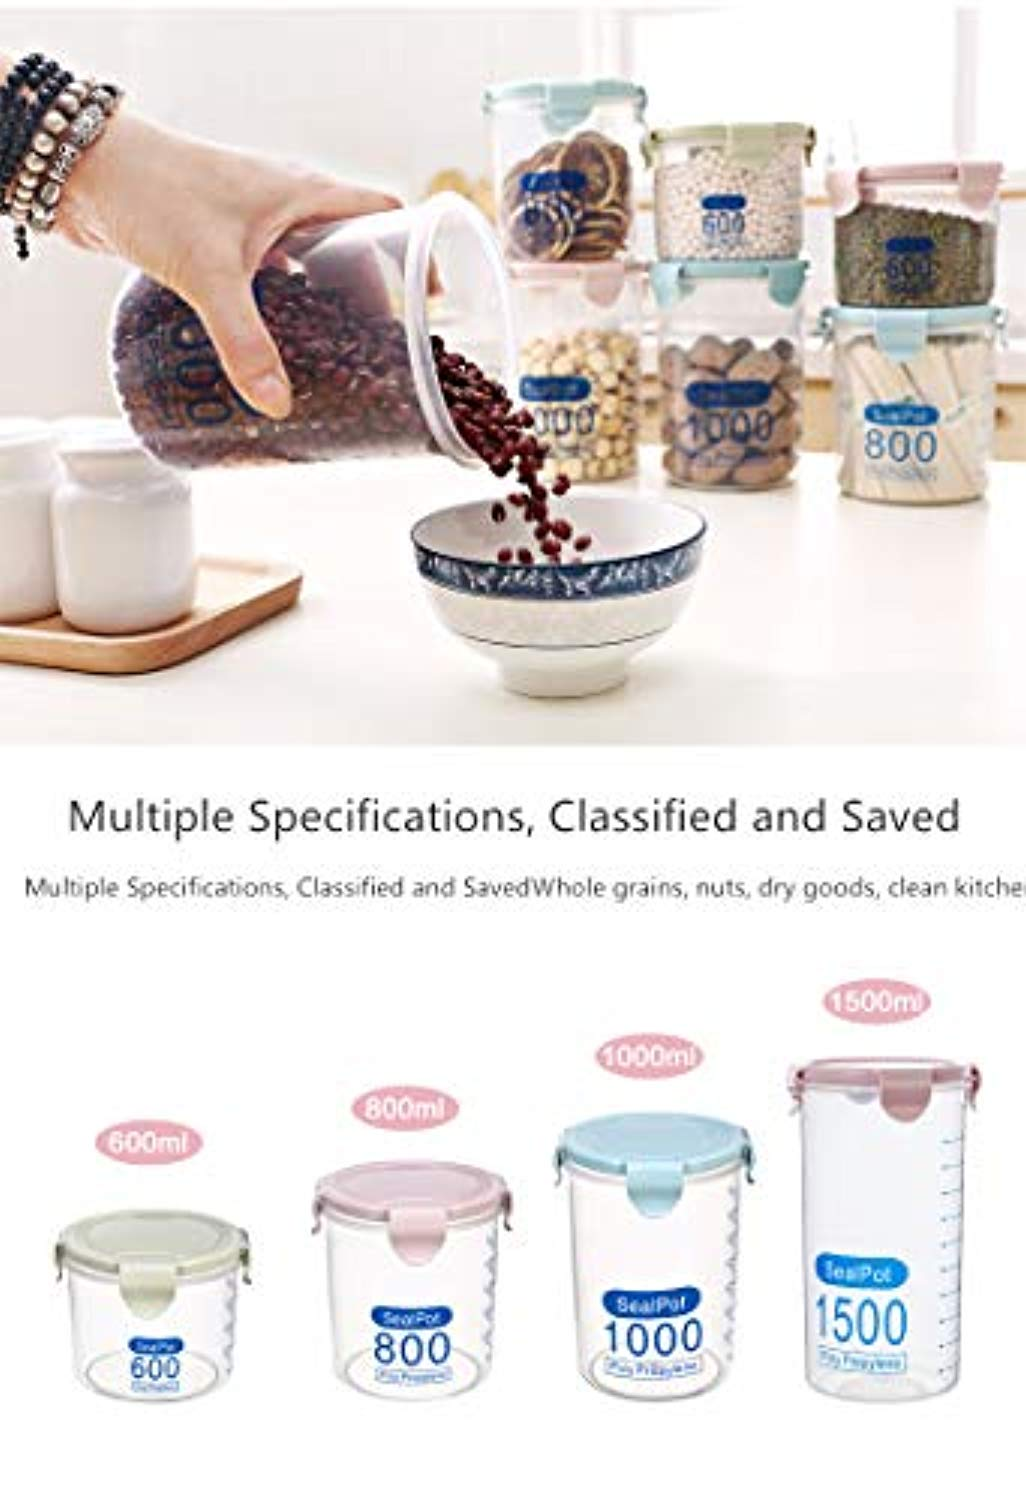 600ml Transparent Plastic Sealed Cans Food Grain Fridge Storage Tank Kitchen Cereal Storage Box (3 colors)